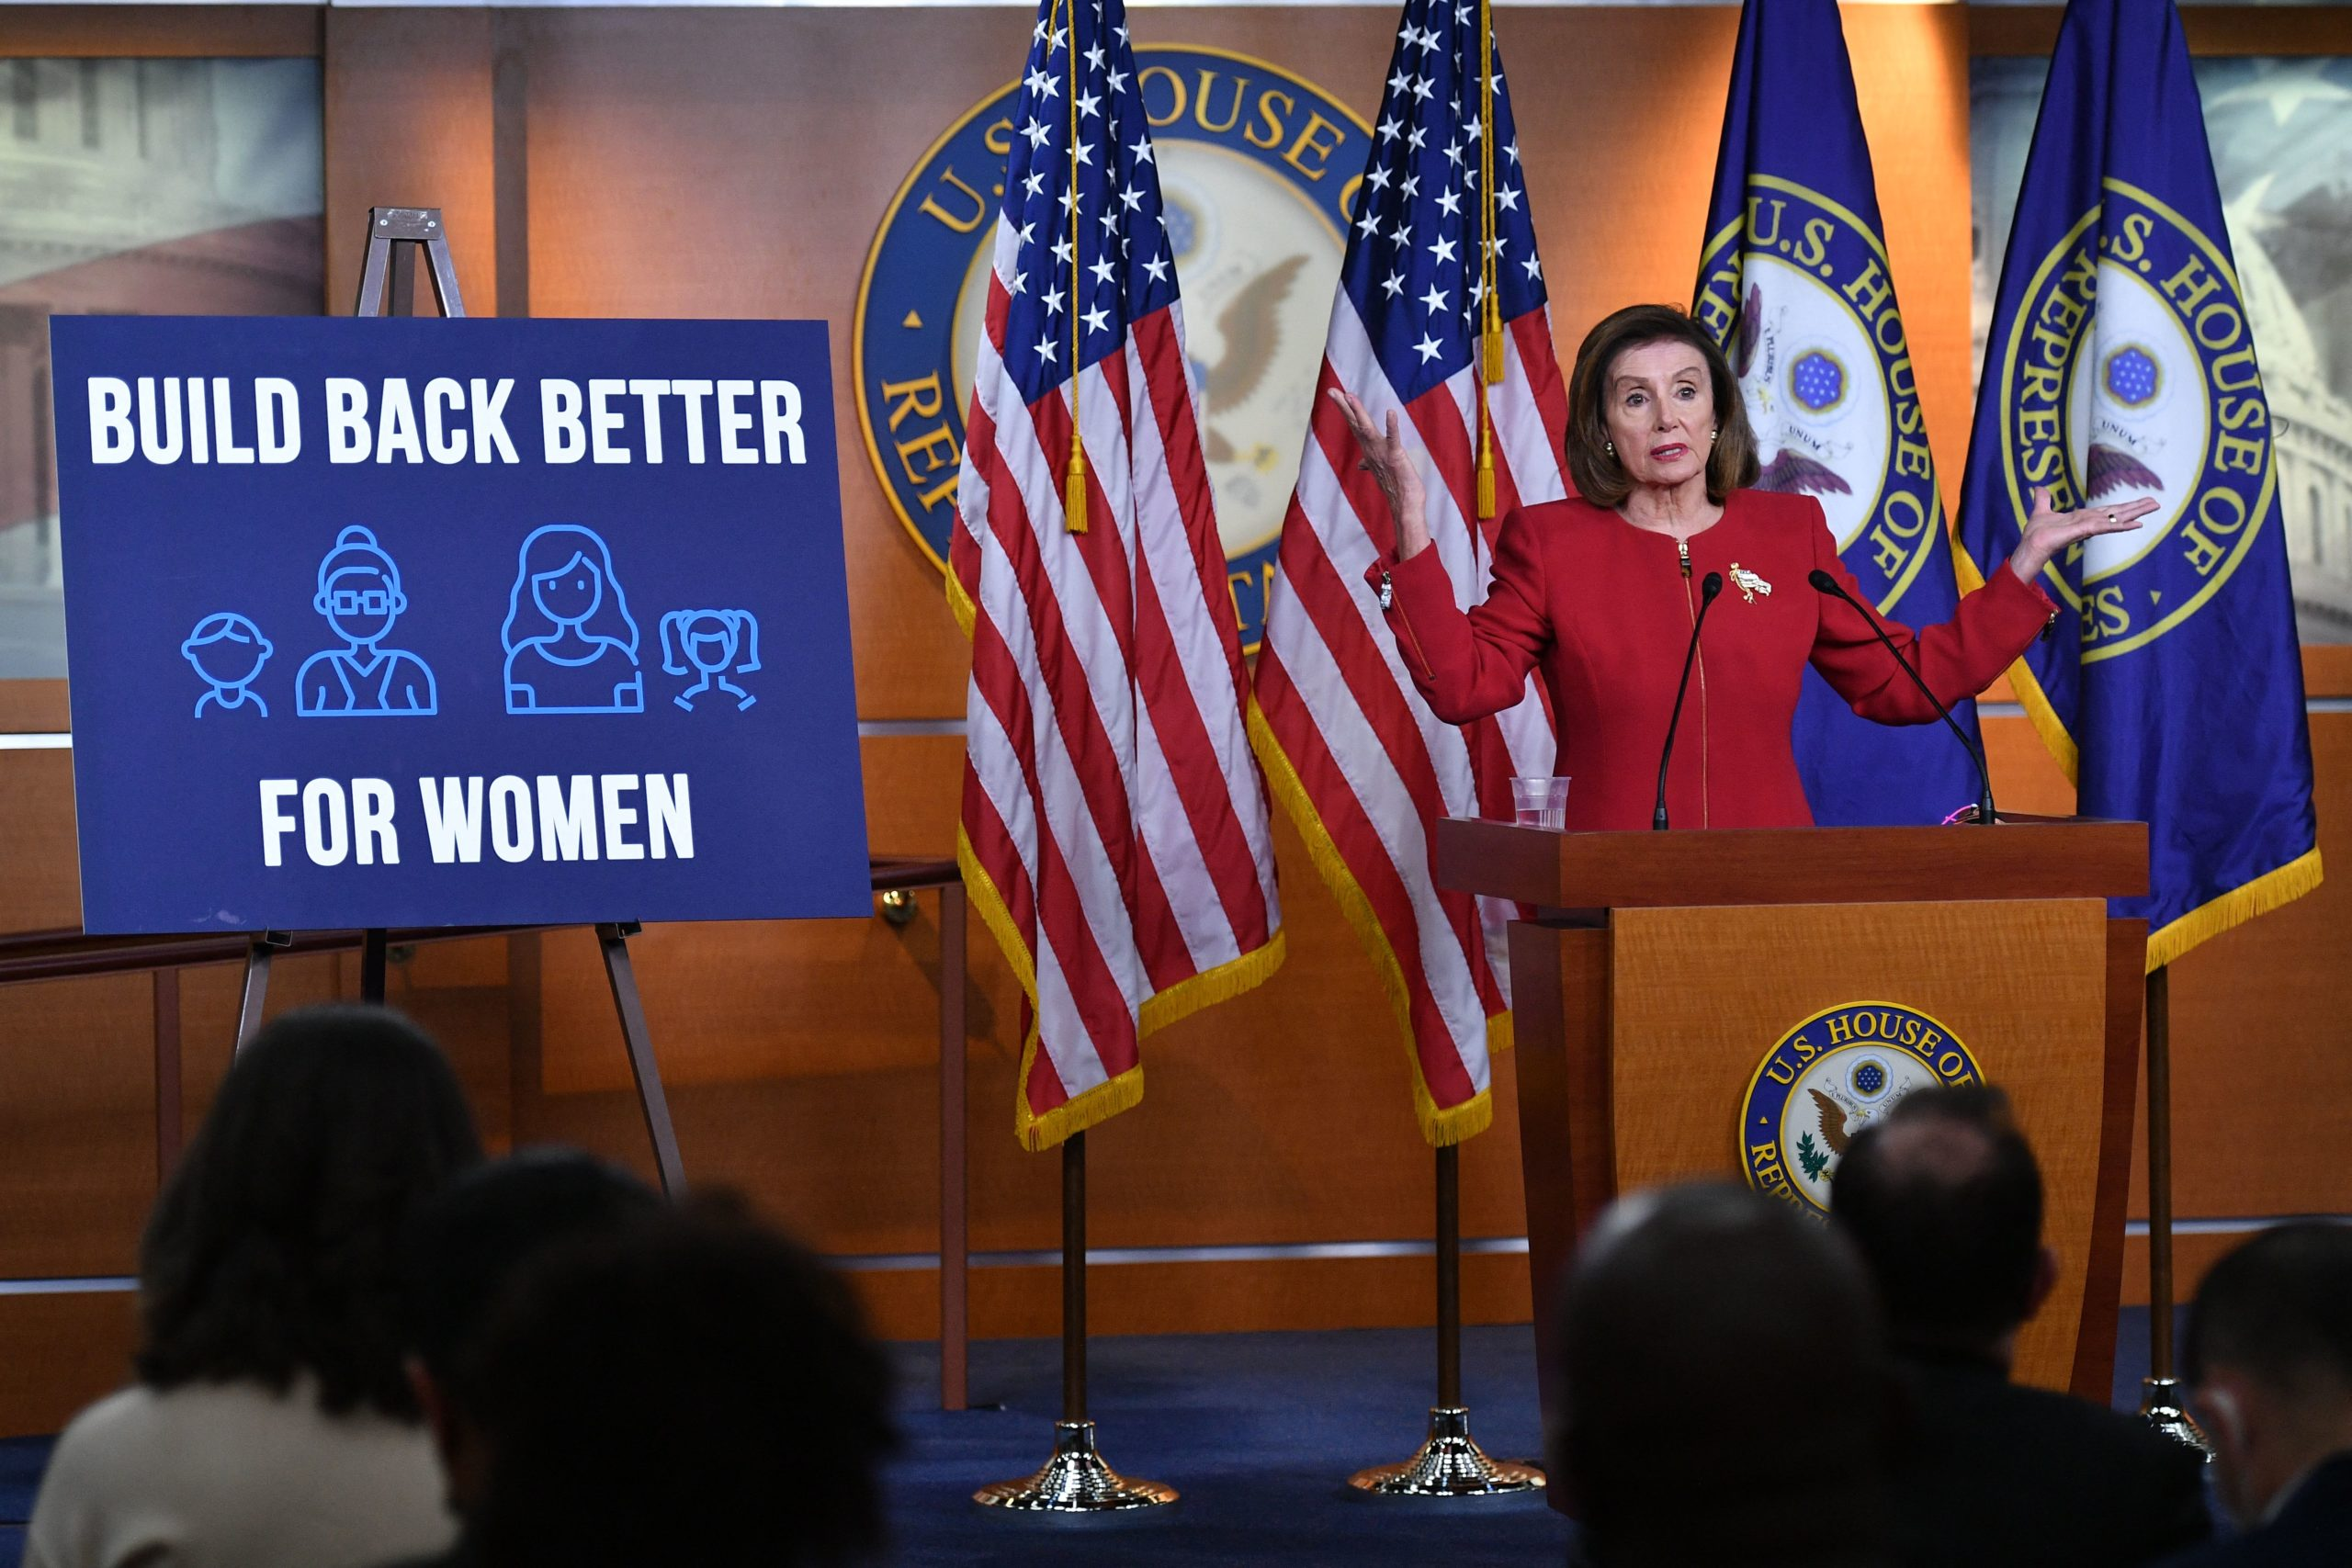 House Speaker Nancy Pelosi said Wednesday that a debt ceiling increase would not be included in Democrats' budget, setting up another bitter, partisan fight. (MANDEL NGAN/AFP via Getty Images)